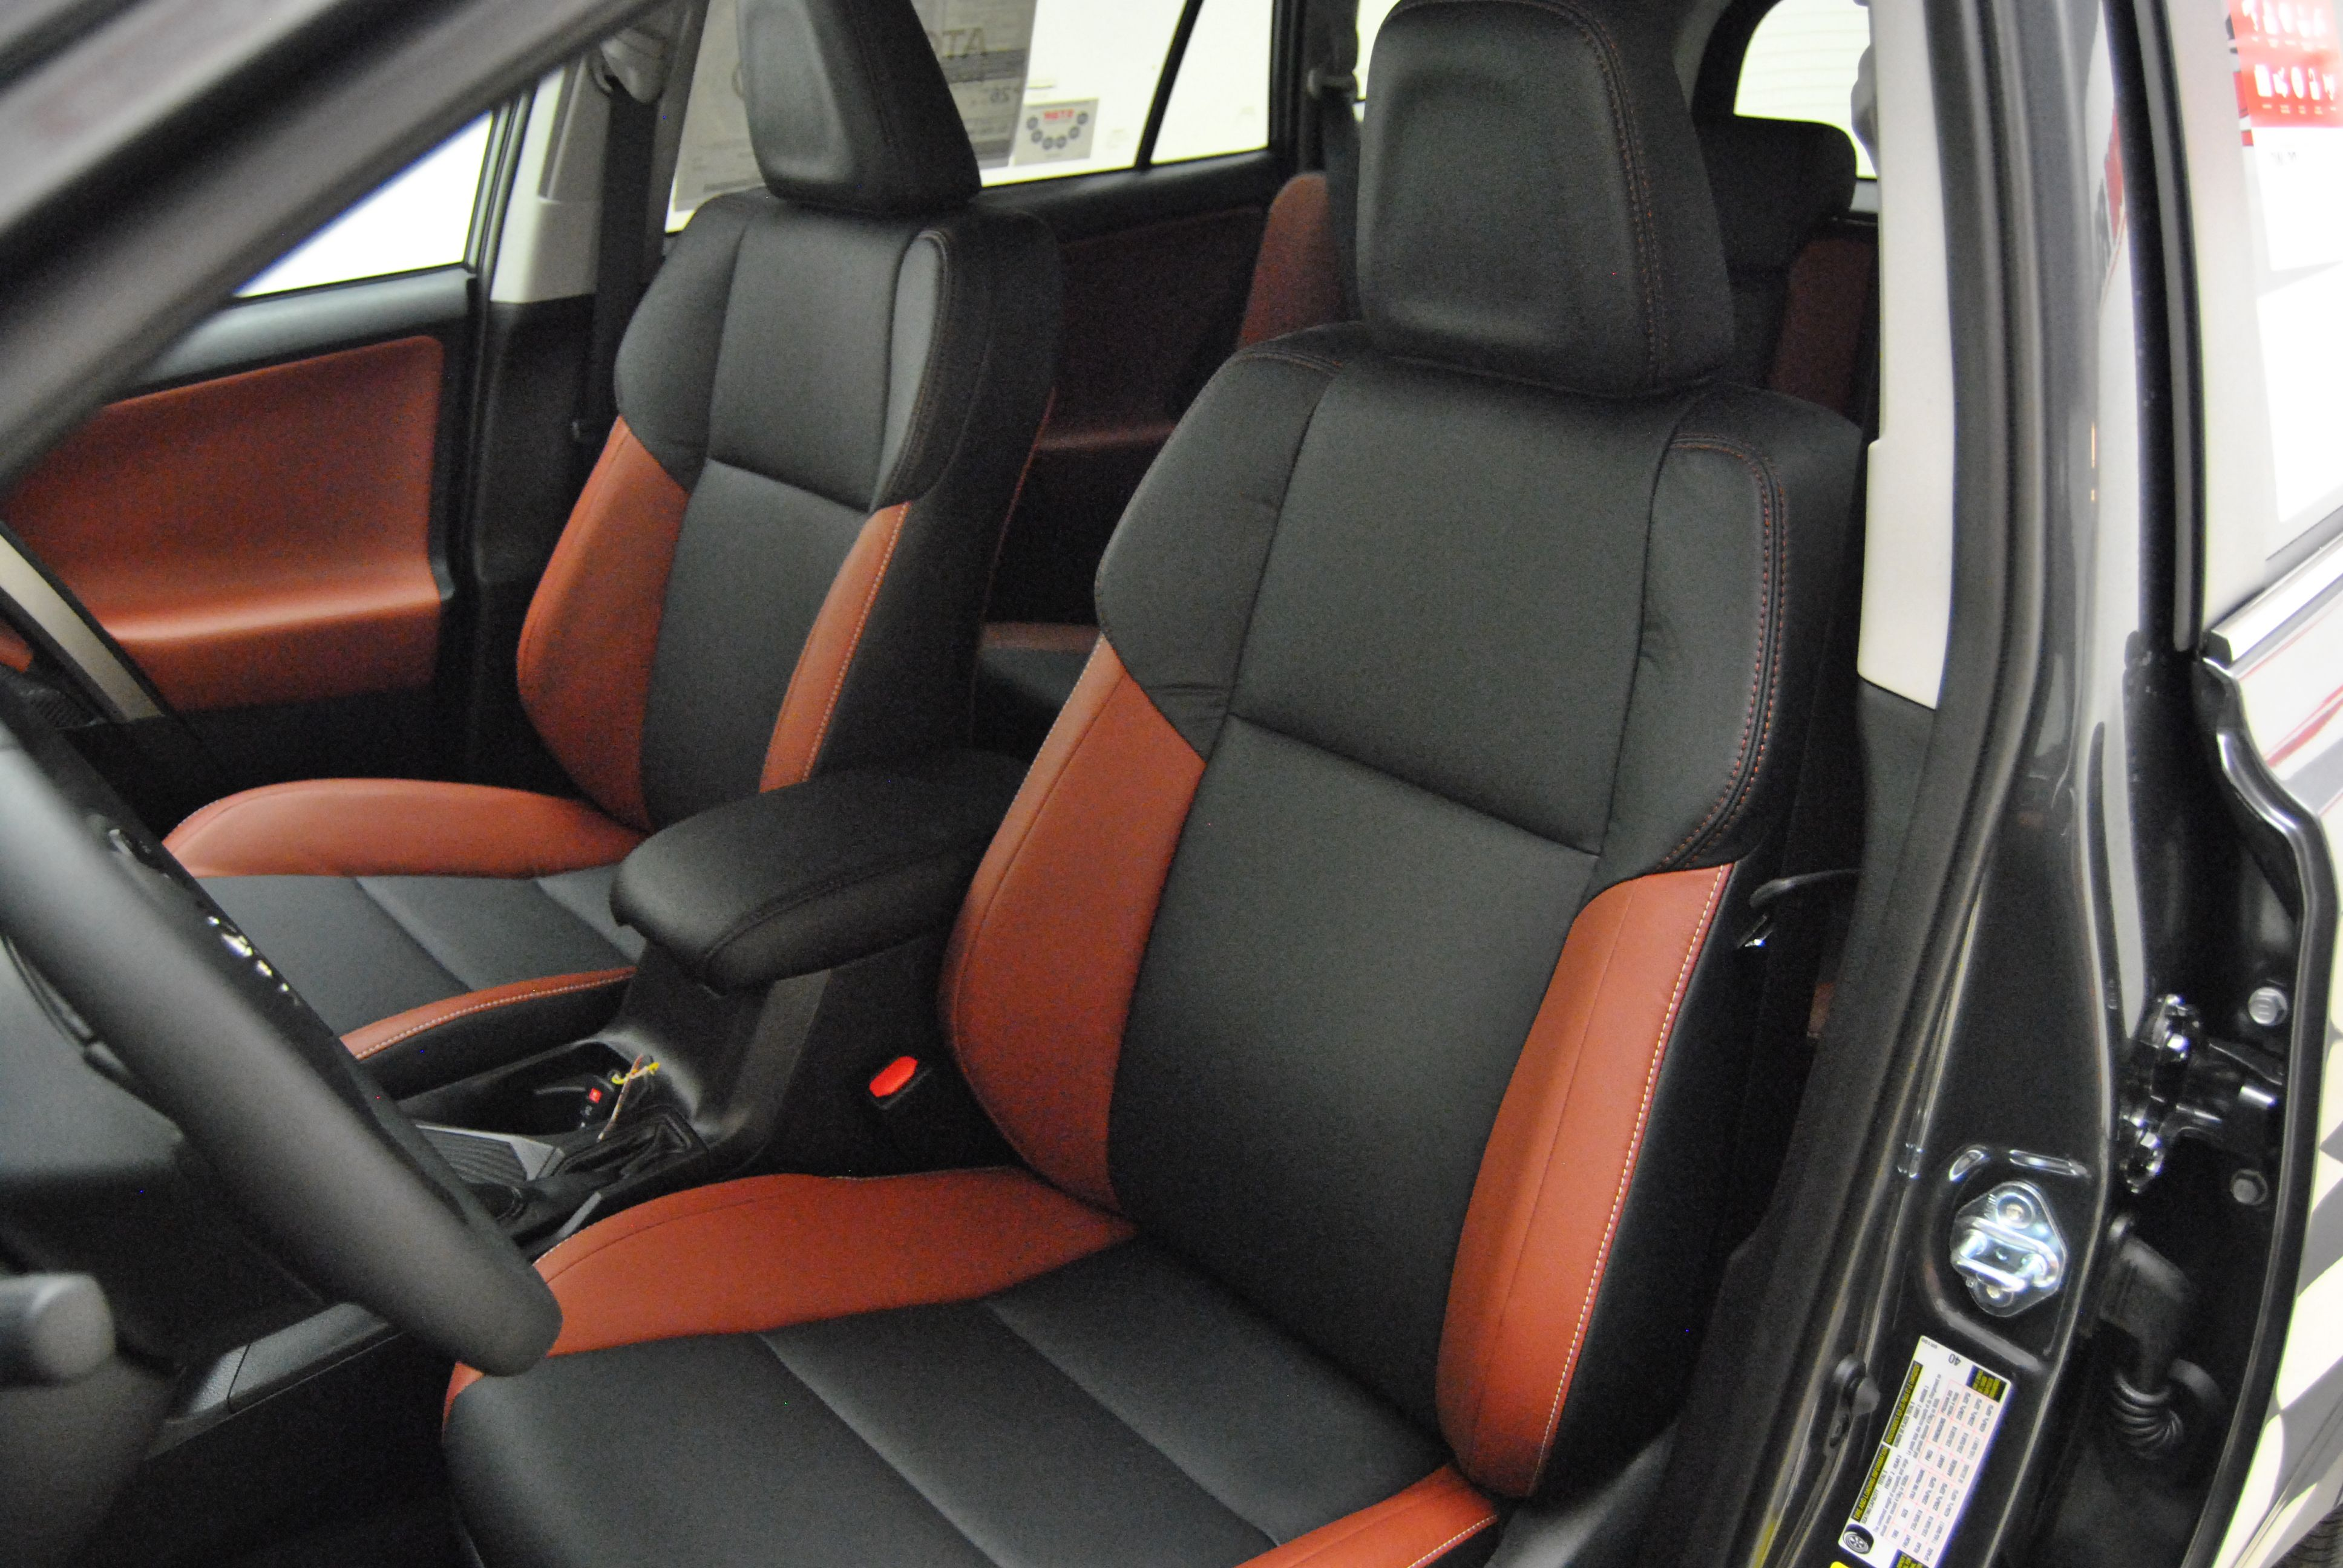 2015 Toyota Rav4 Limited Four Door Compact Suv With Two Tone Leather Interior At Milton Ruben